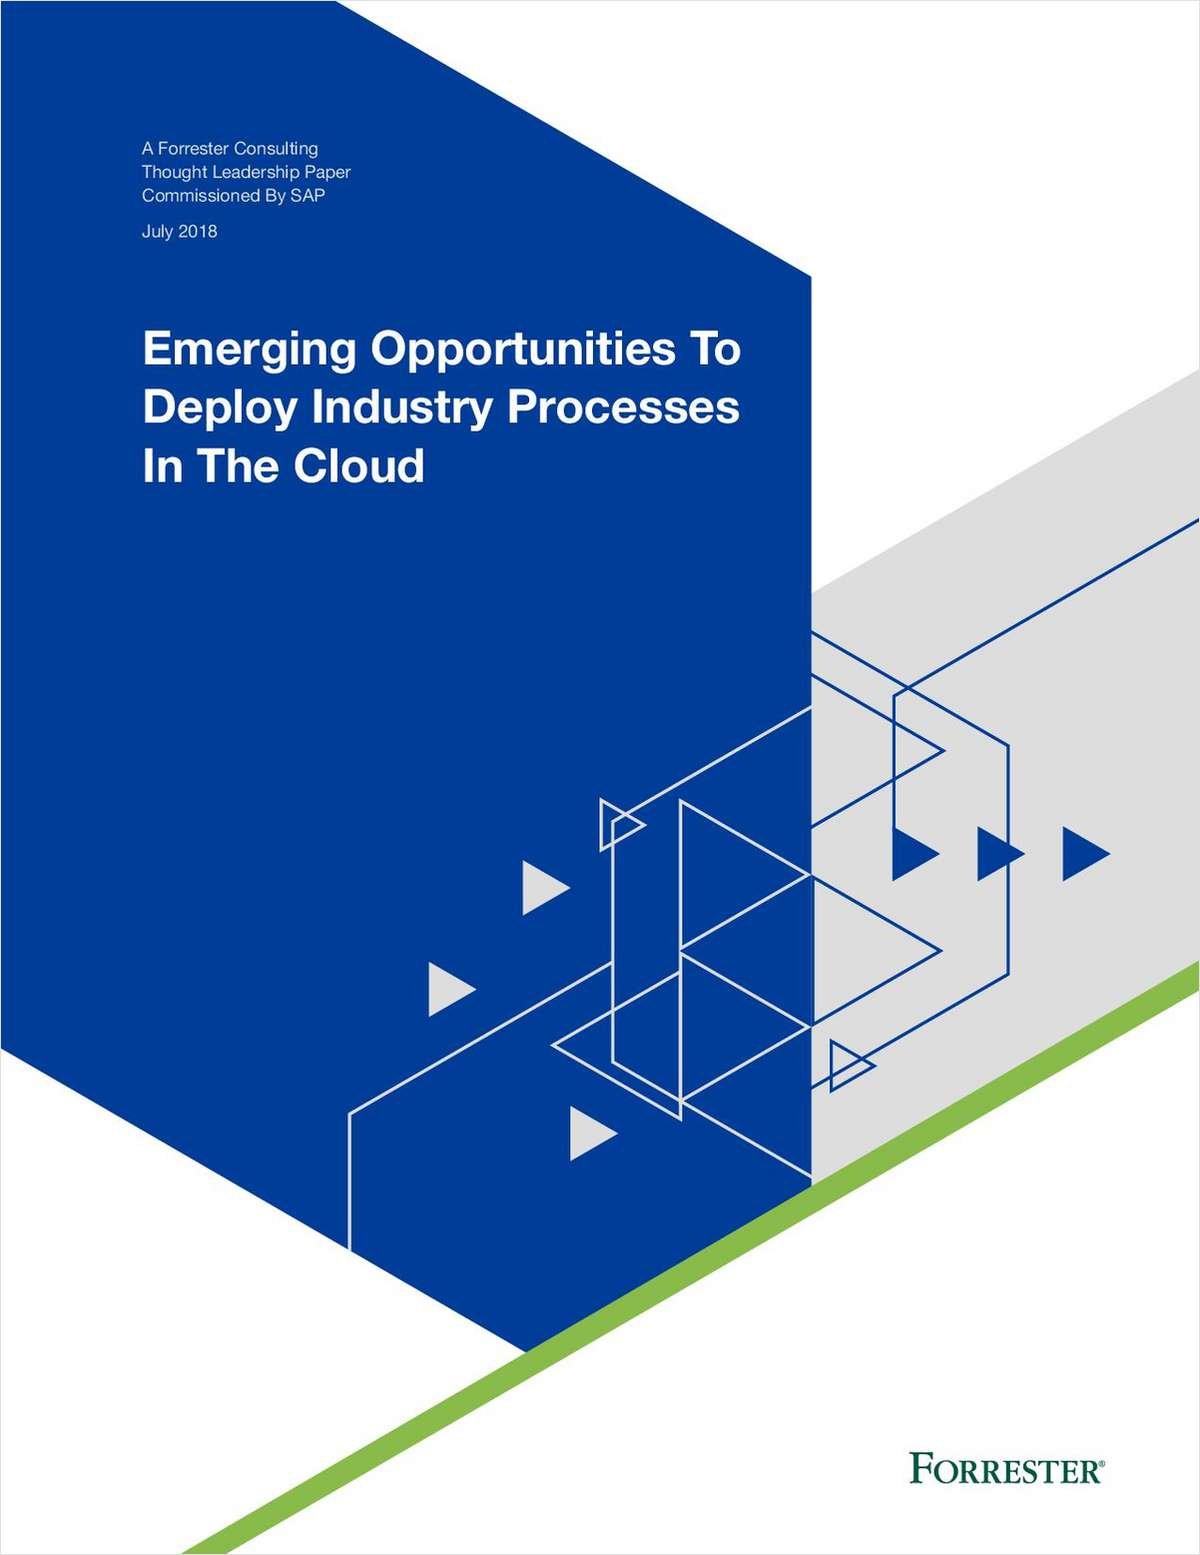 Emerging Opportunities To Deploy Industry Processes In The Cloud